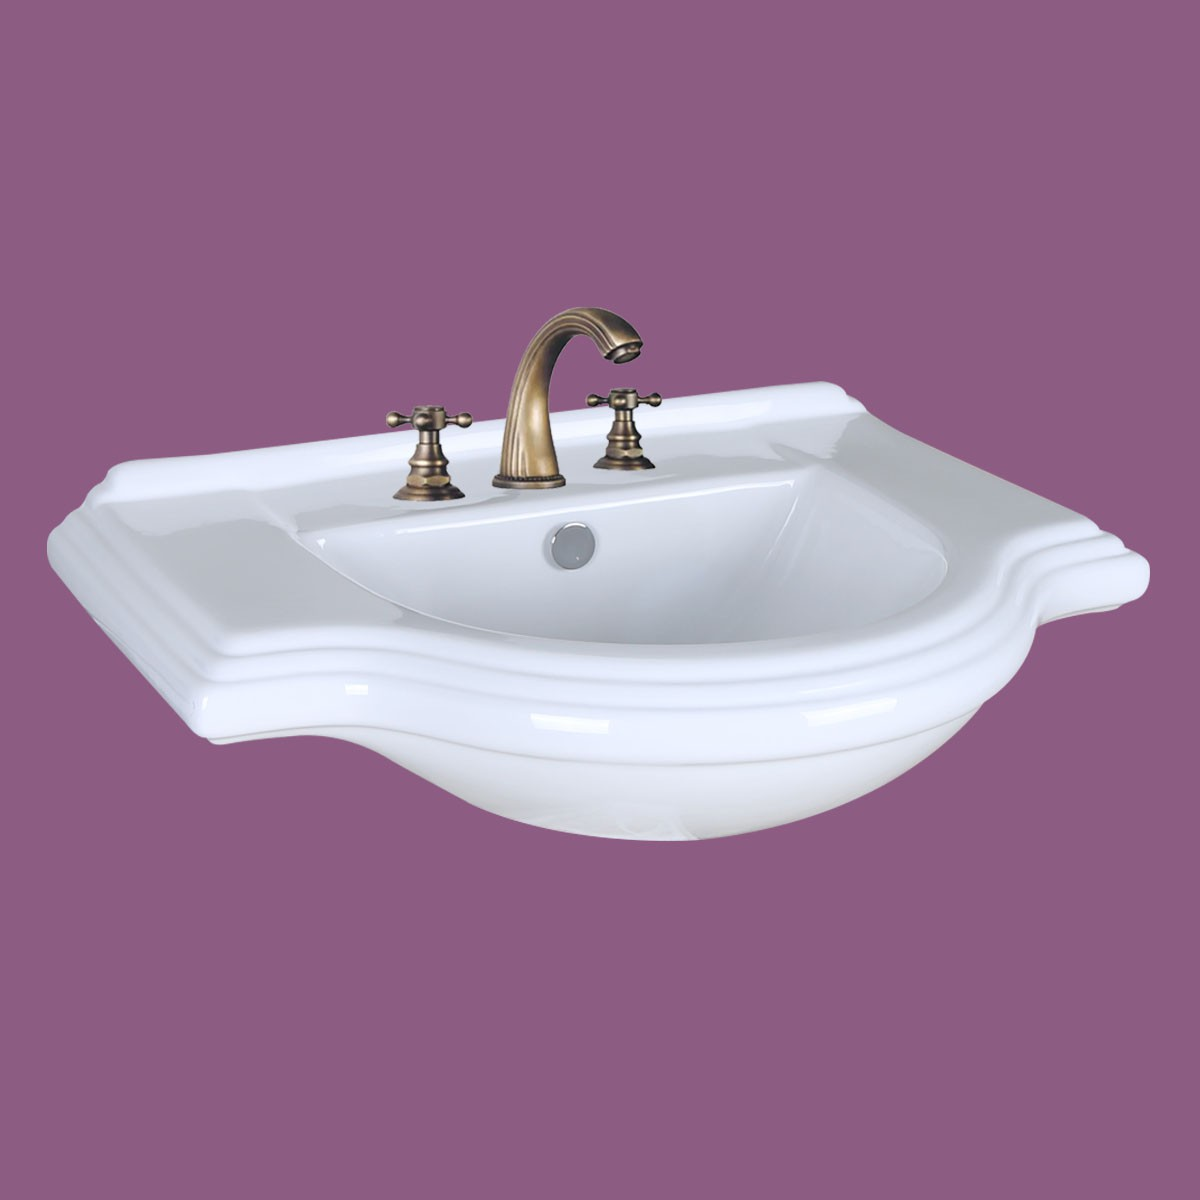 Vintage Wall Mount Bathroom Console Sink 8